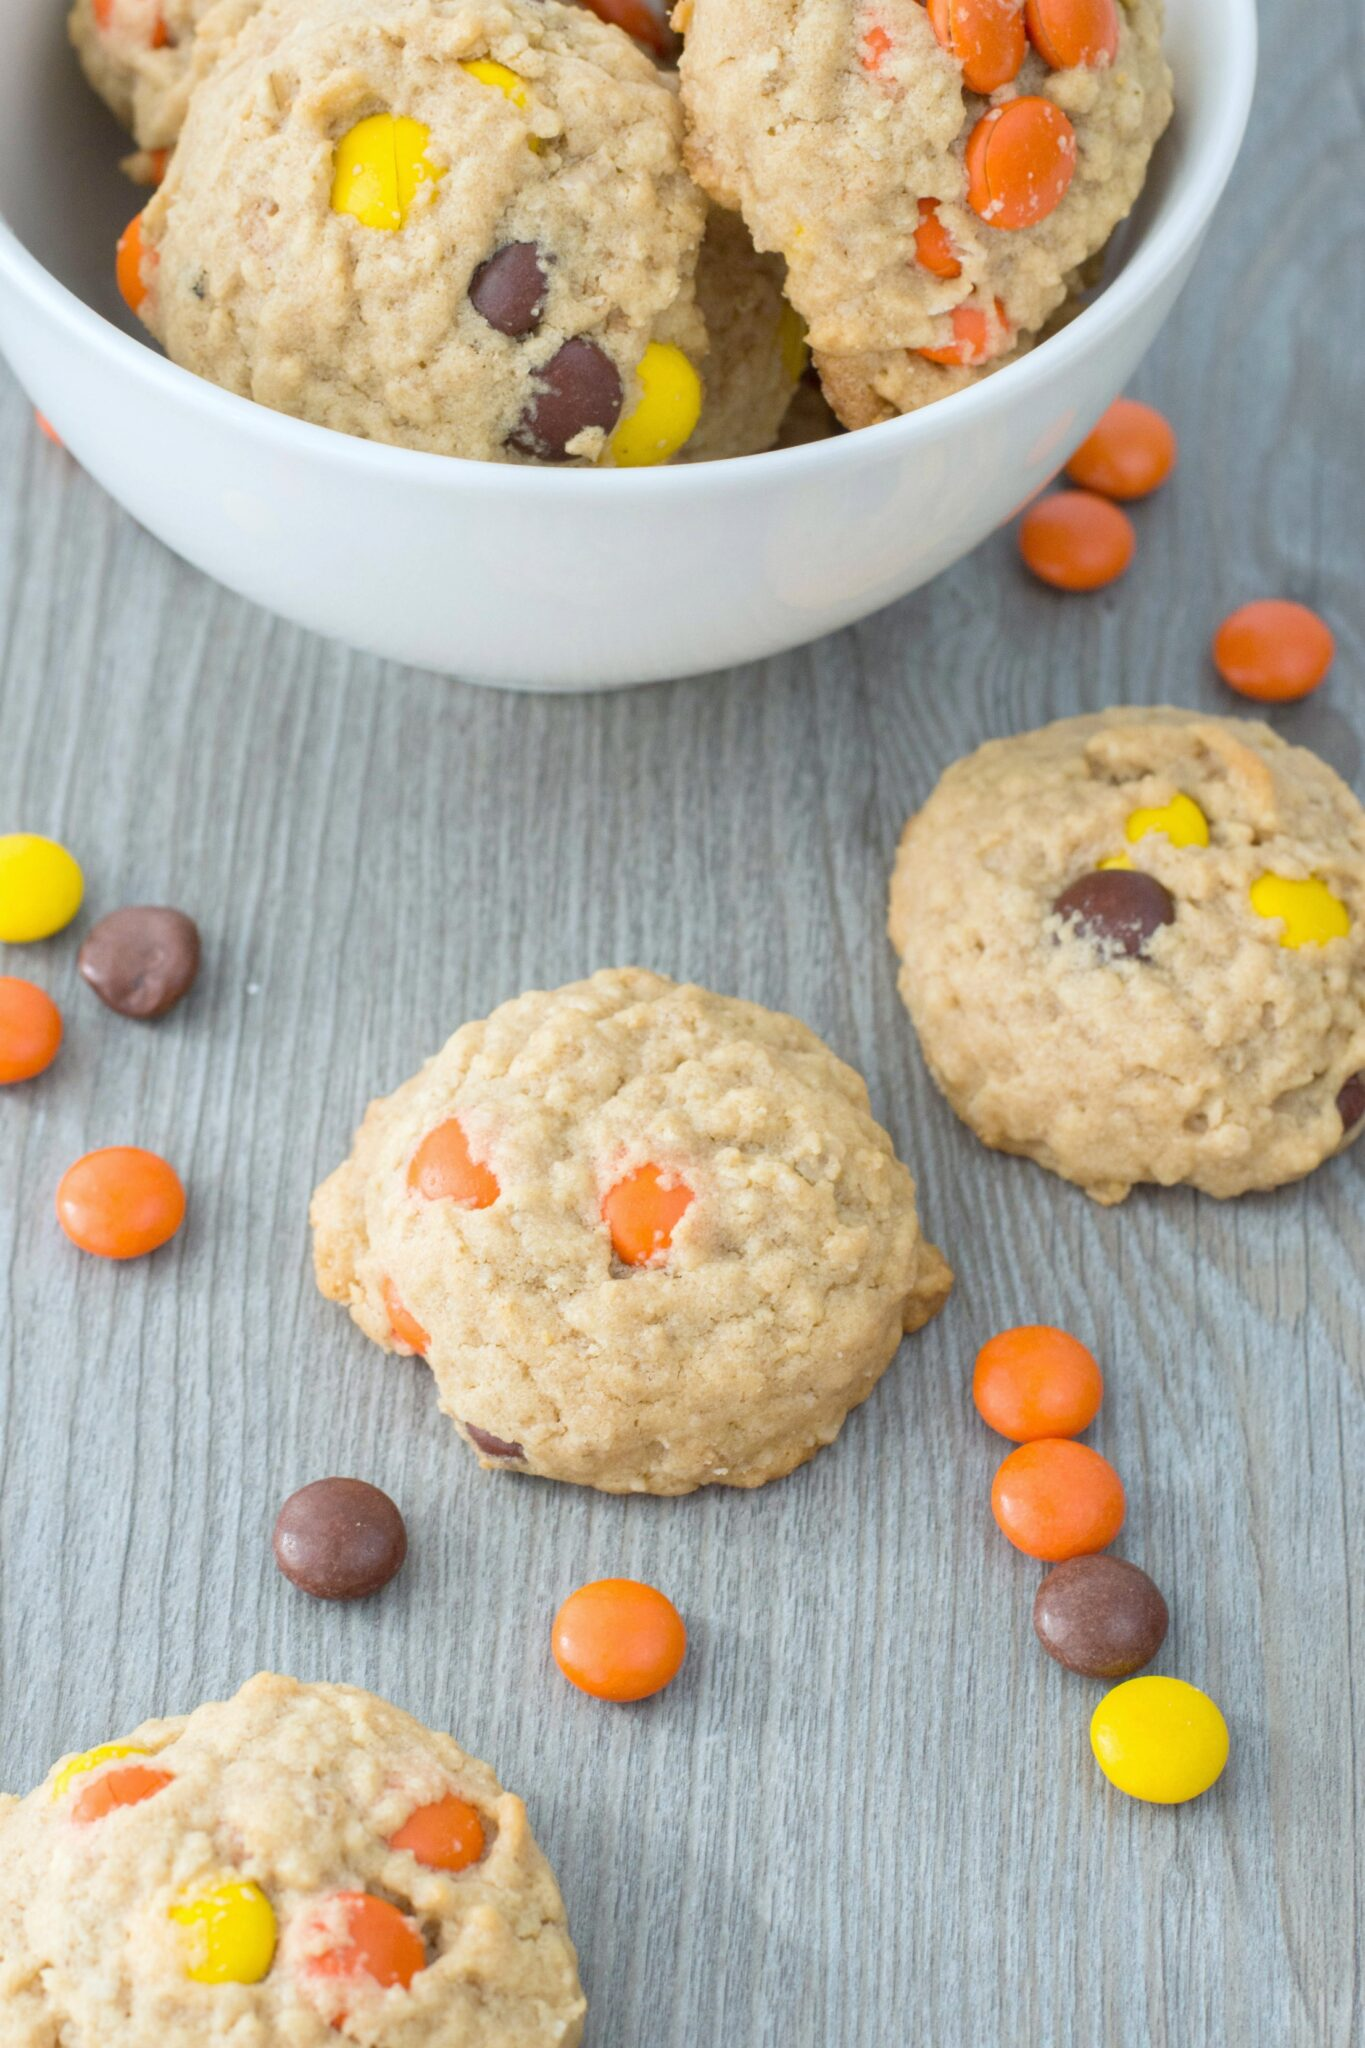 A bowl full of Reese's Pieces Oatmeal Peanut Butter cookies with 3 cookies on the table surrounded by Reese's Pieces. They sit on a grey table.